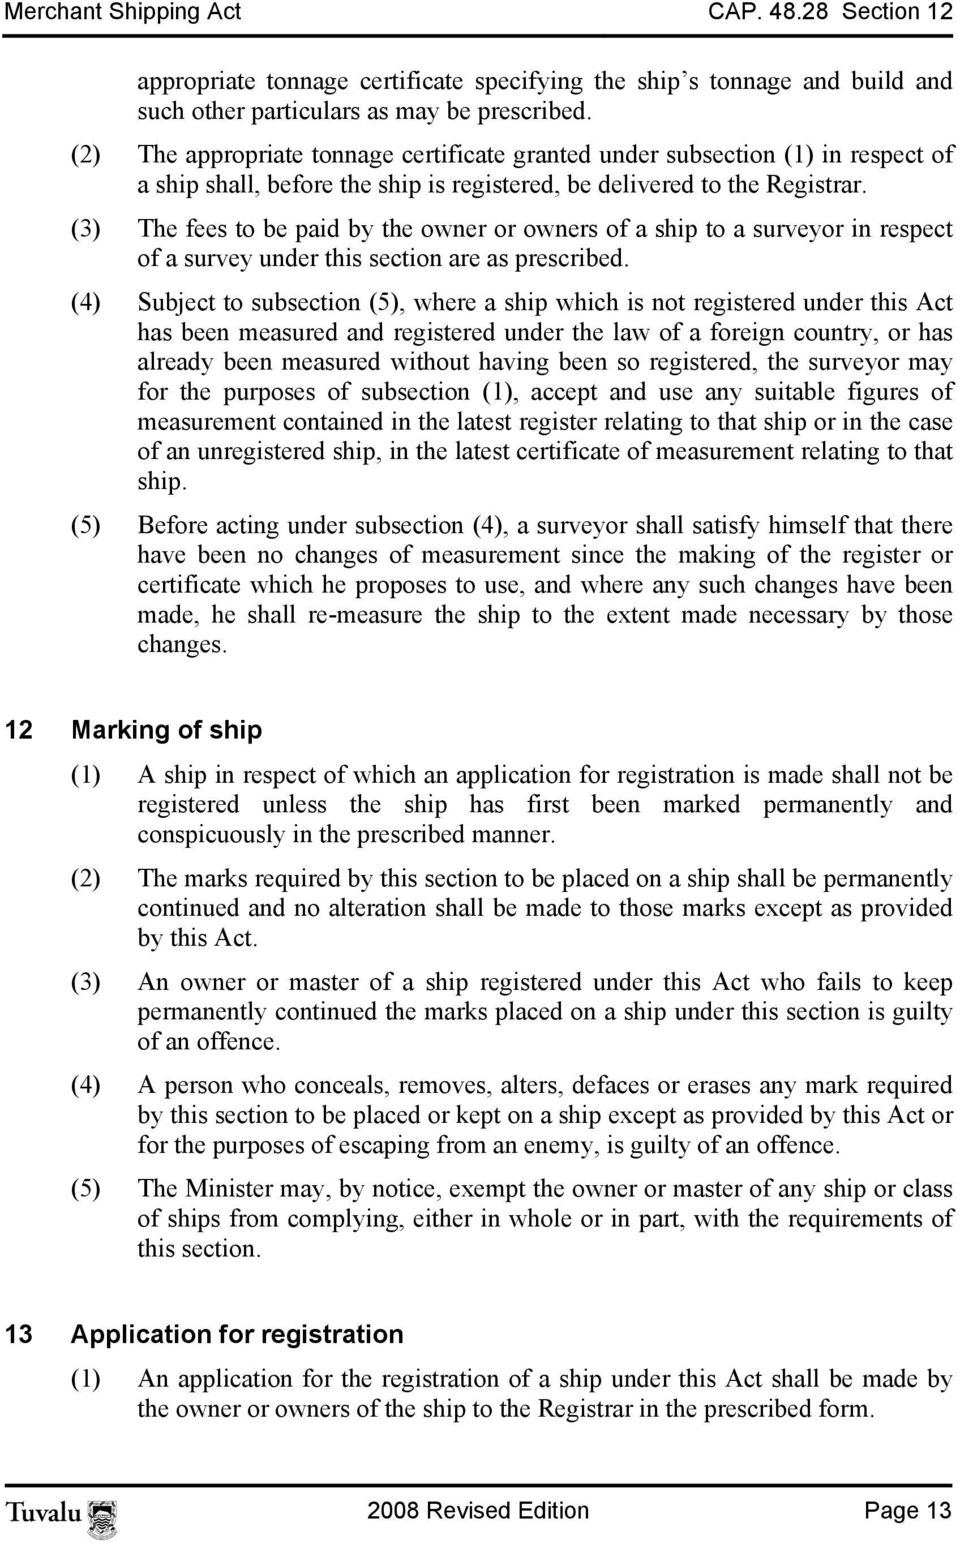 (3) The fees to be paid by the owner or owners of a ship to a surveyor in respect of a survey under this section are as prescribed.